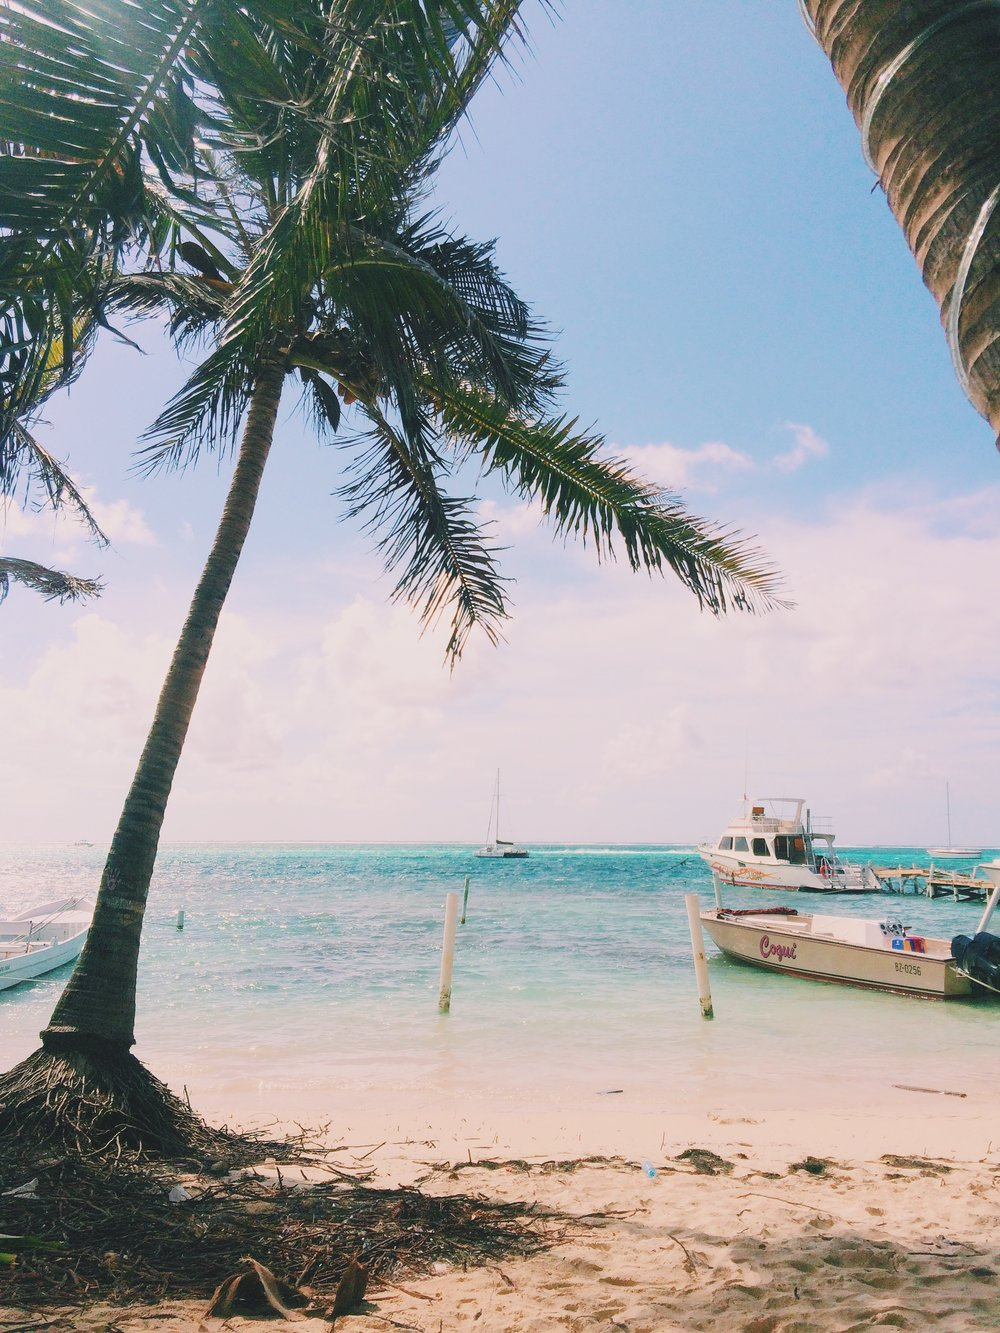 San Pedro, Belize travel guide